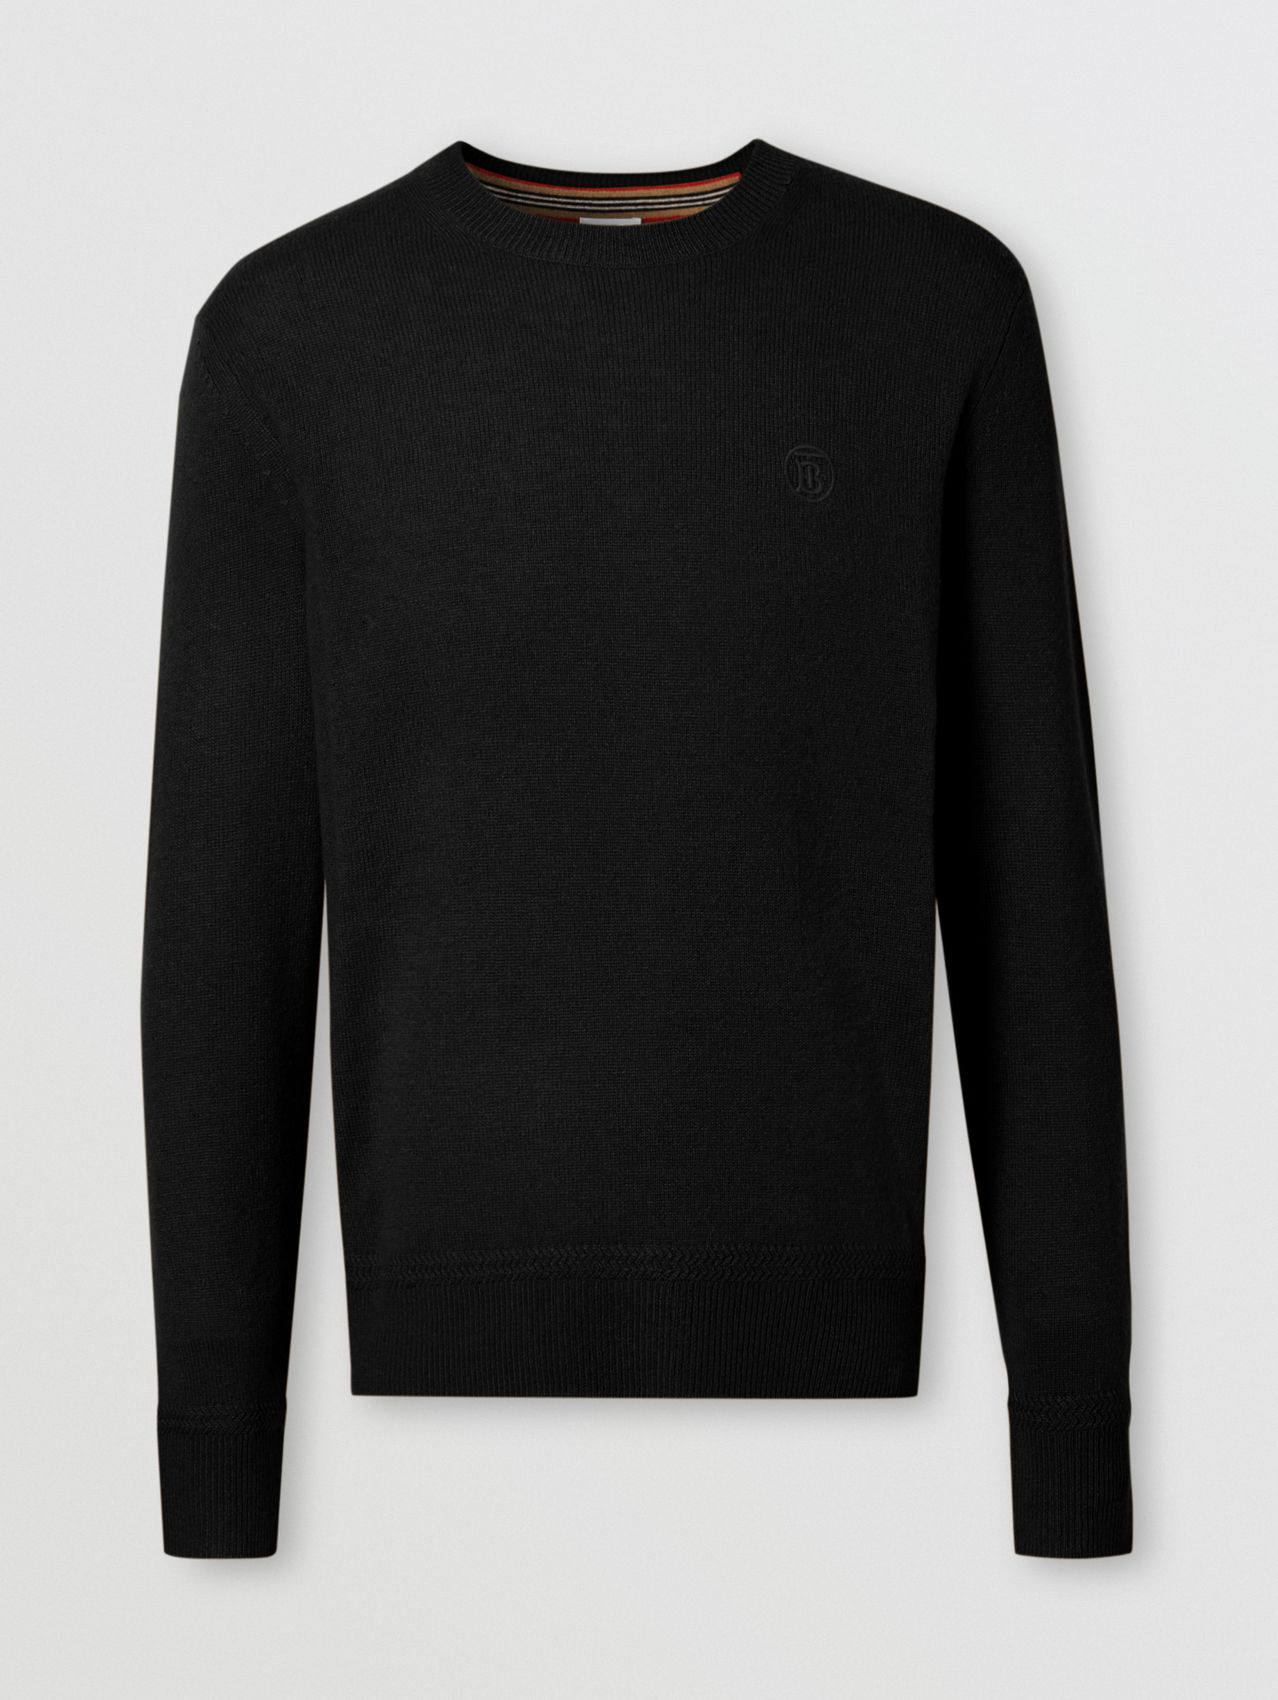 Monogram Motif Cashmere Sweater in Black